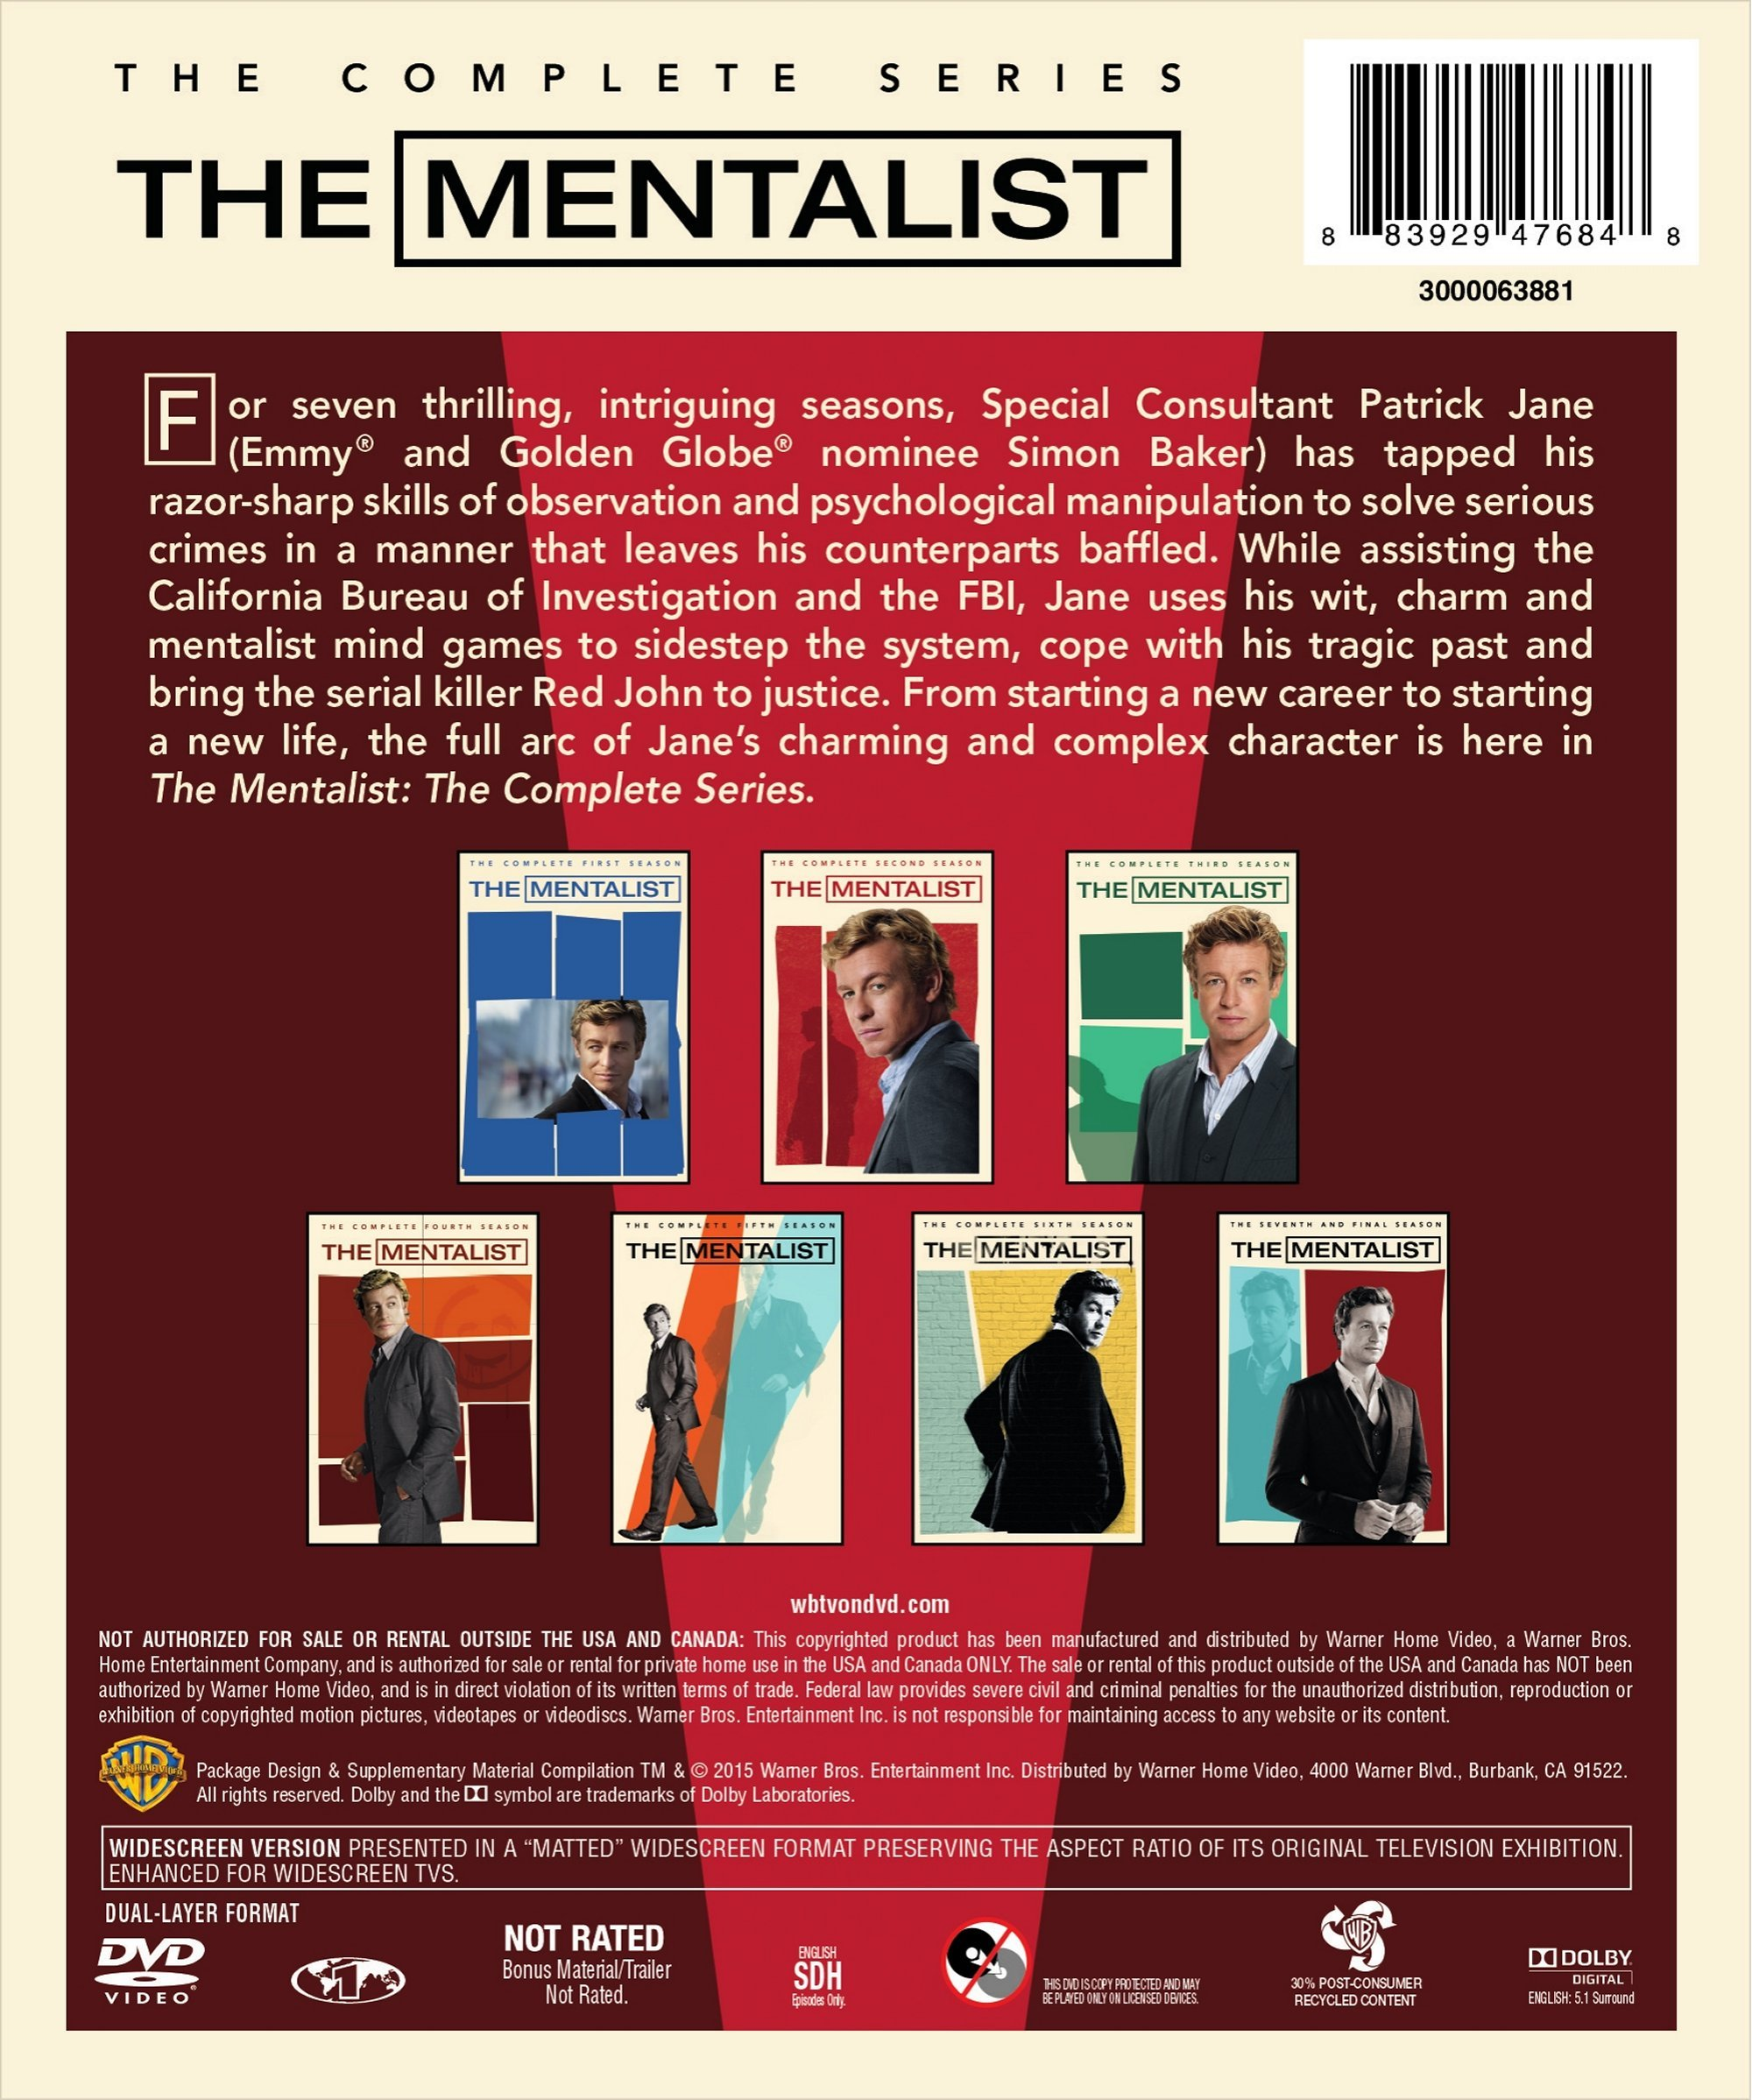 The Mentalist: The Complete Series by Warner Manufacturing